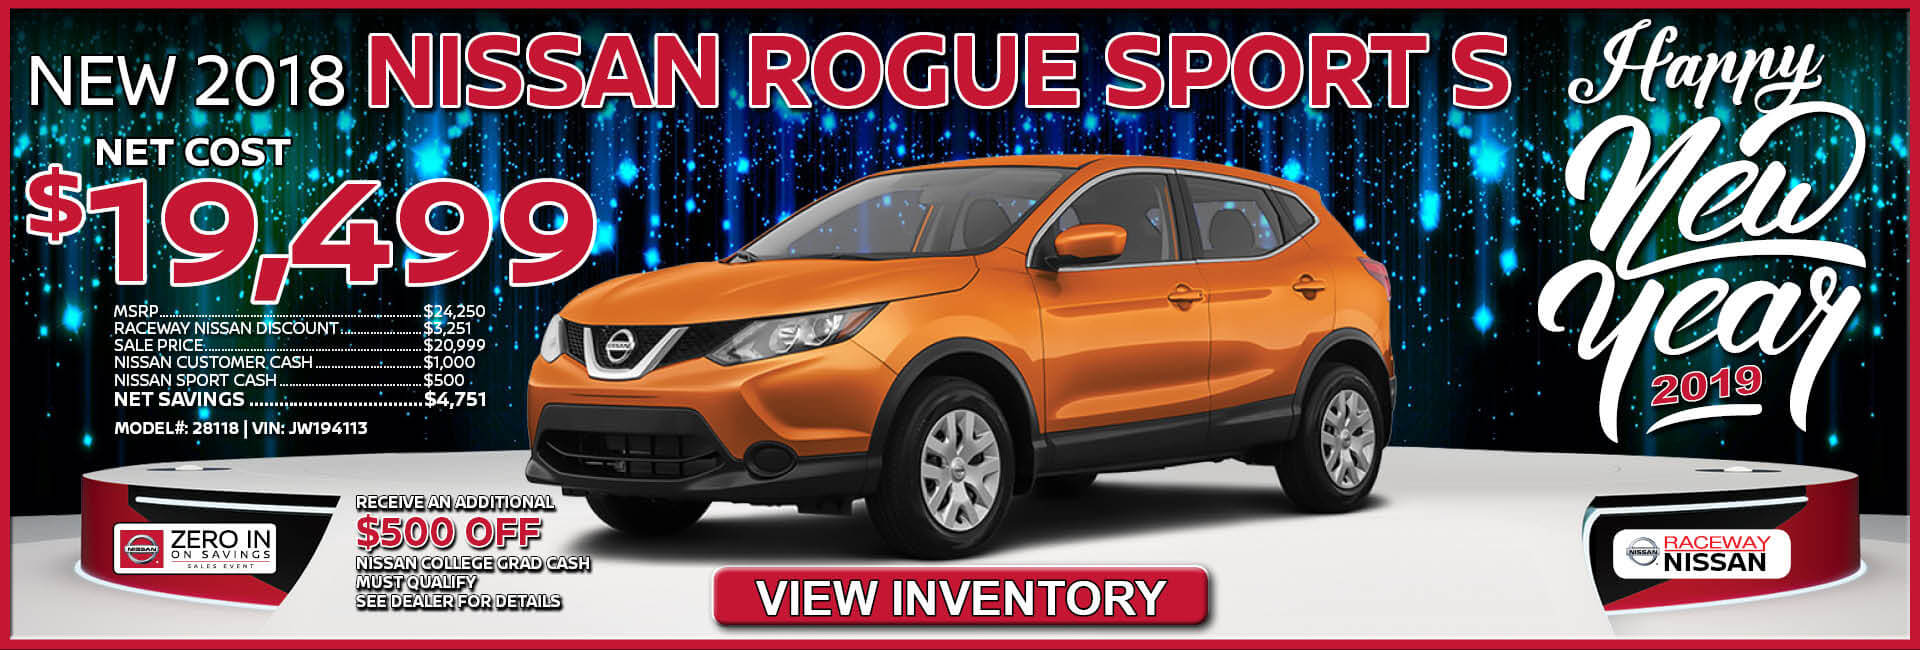 Nissan Rogue Sport $19,499 Purchase